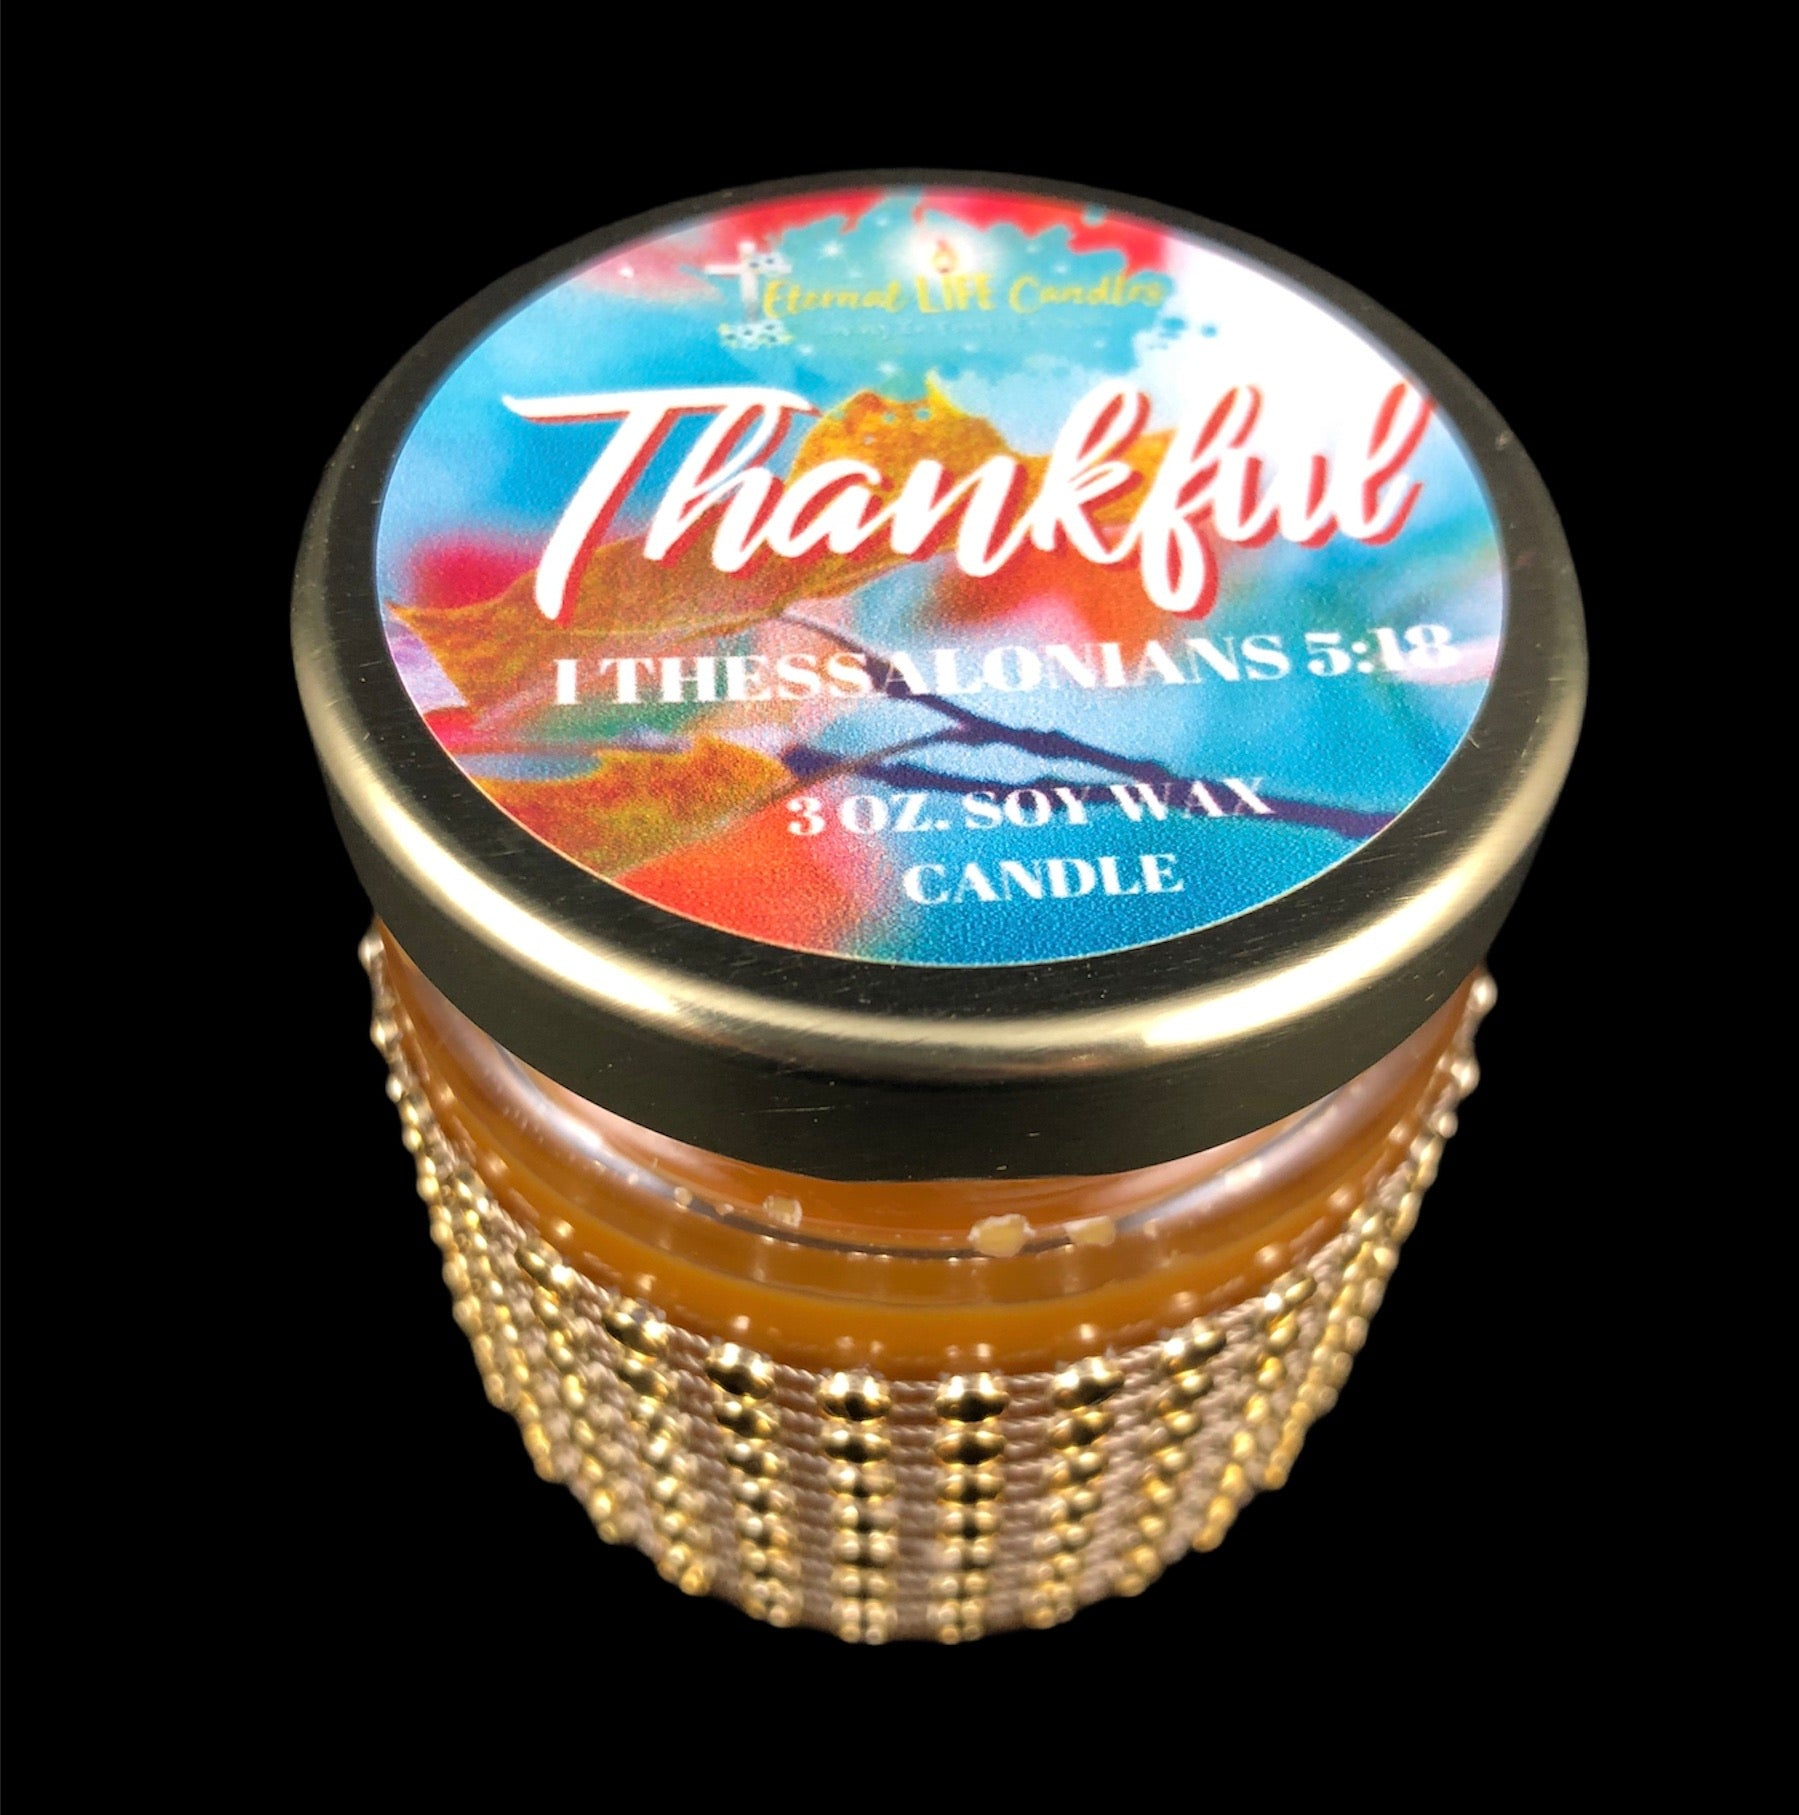 Thankful Favored Candle